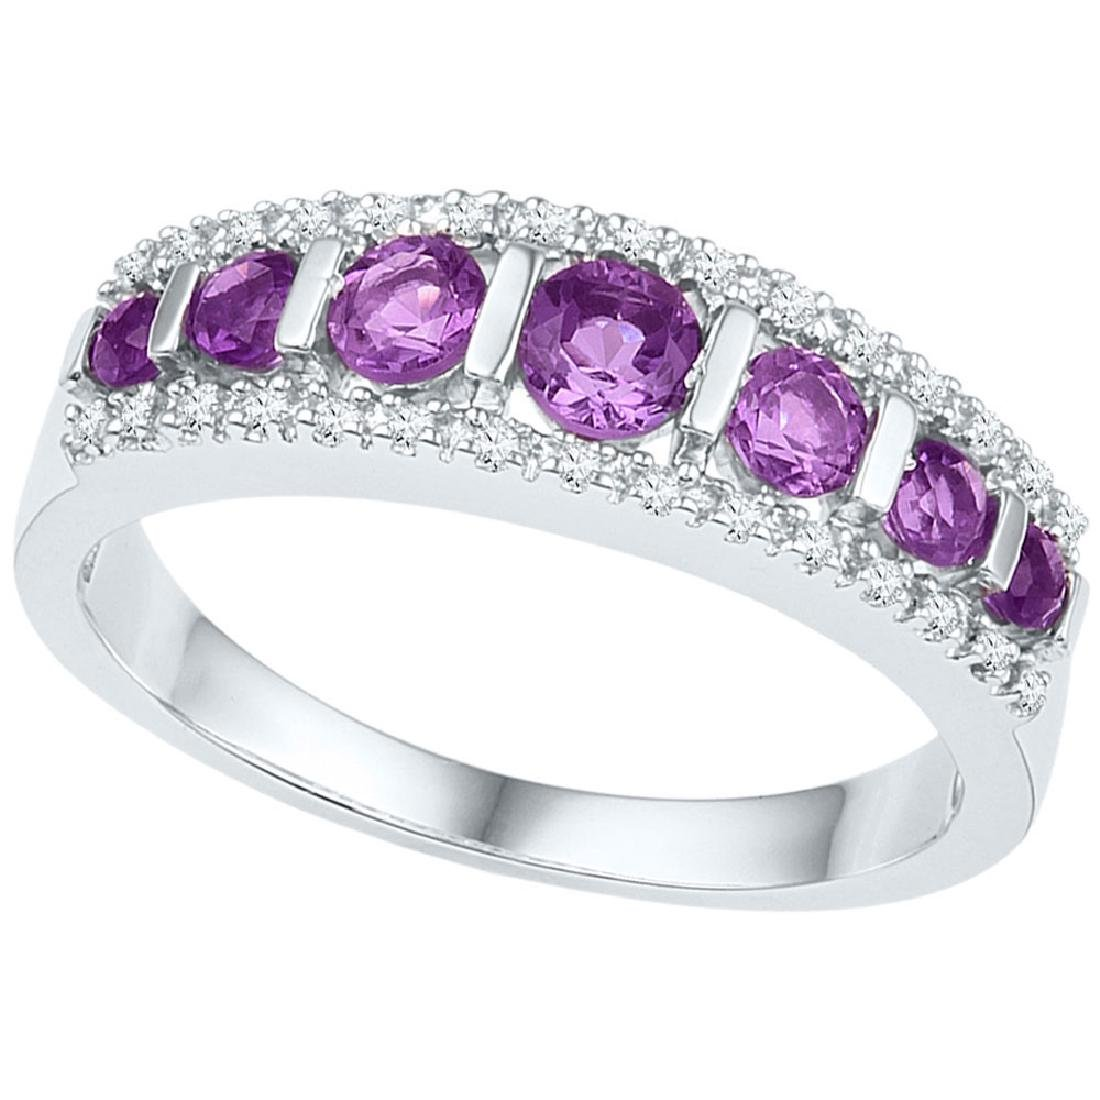 0.73 CTW Created Amethyst Ring 10KT White Gold -